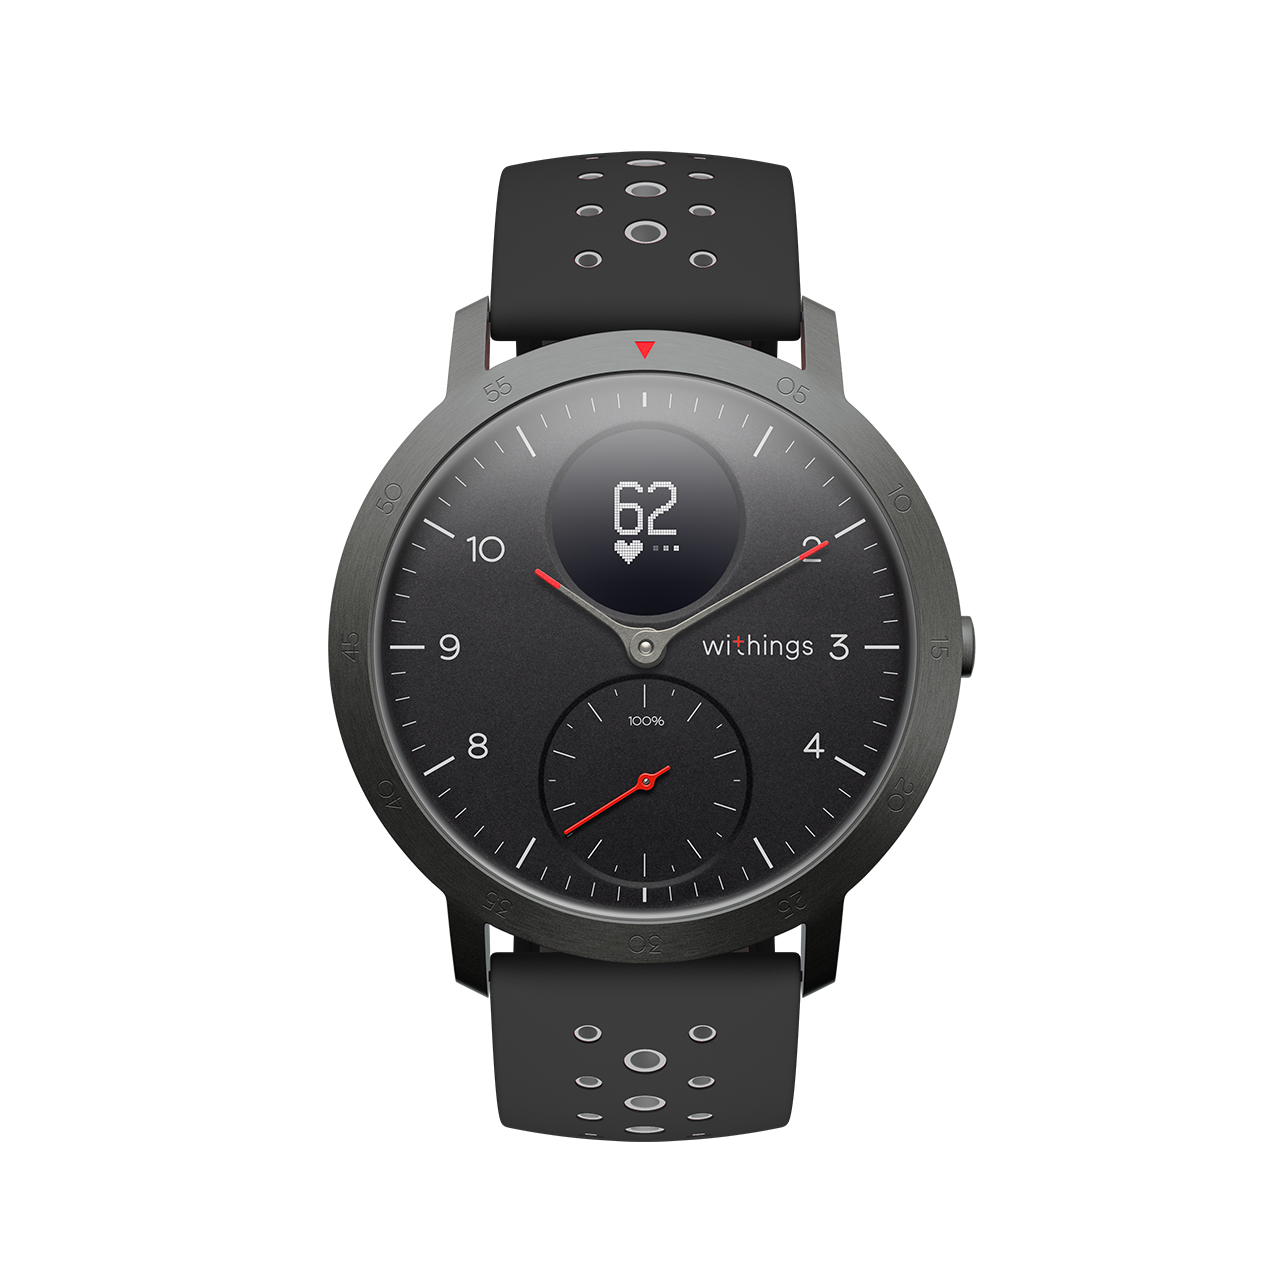 Withings Steel HR Sport, Noir - Montre connectee hybride multisport - Rythme cardiaque, Notifications - Boutique Officielle Withings